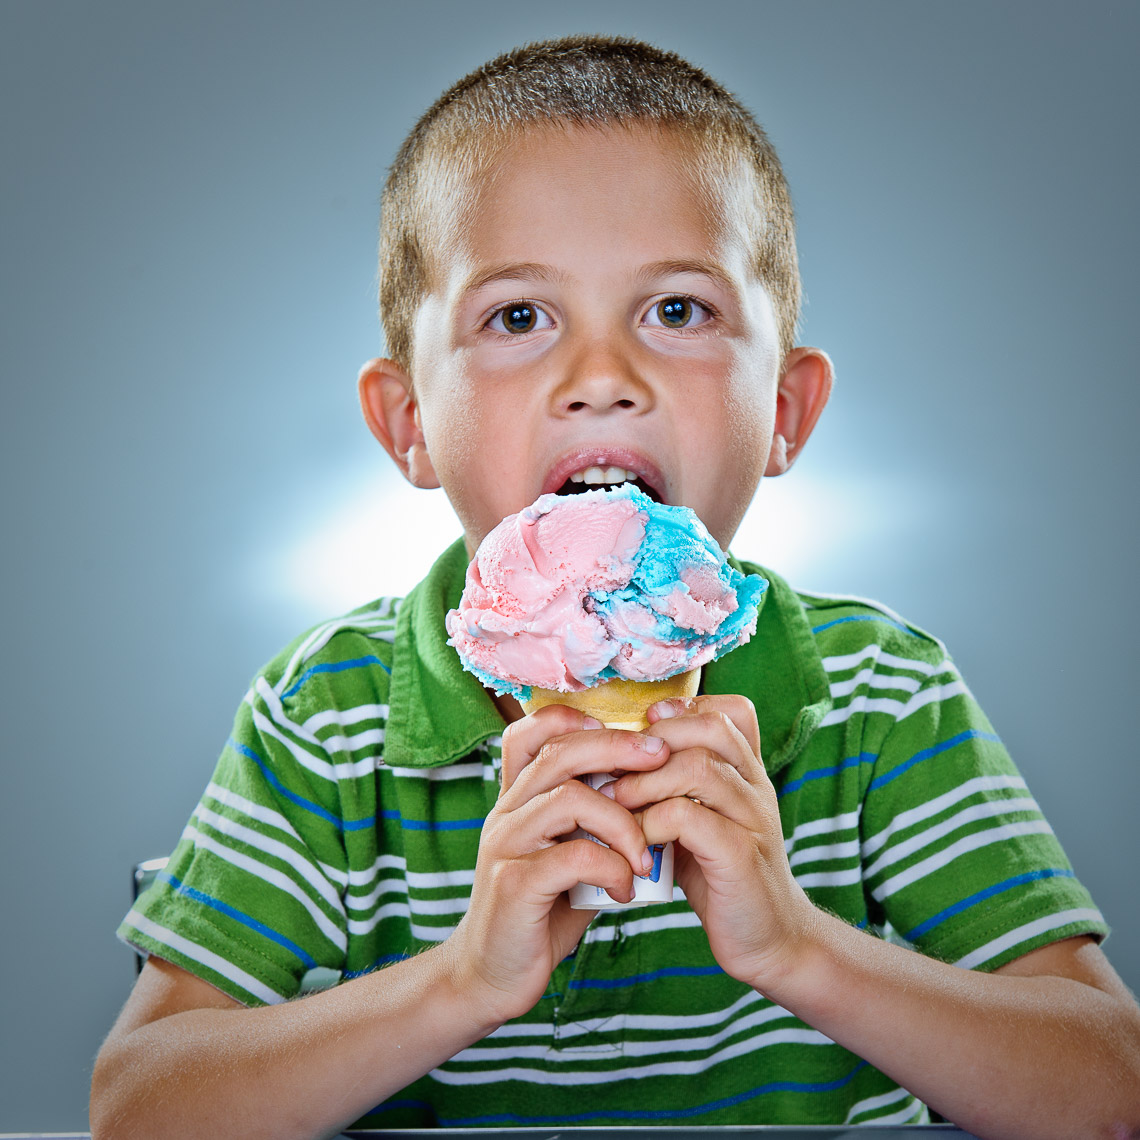 ice_cream_kid5